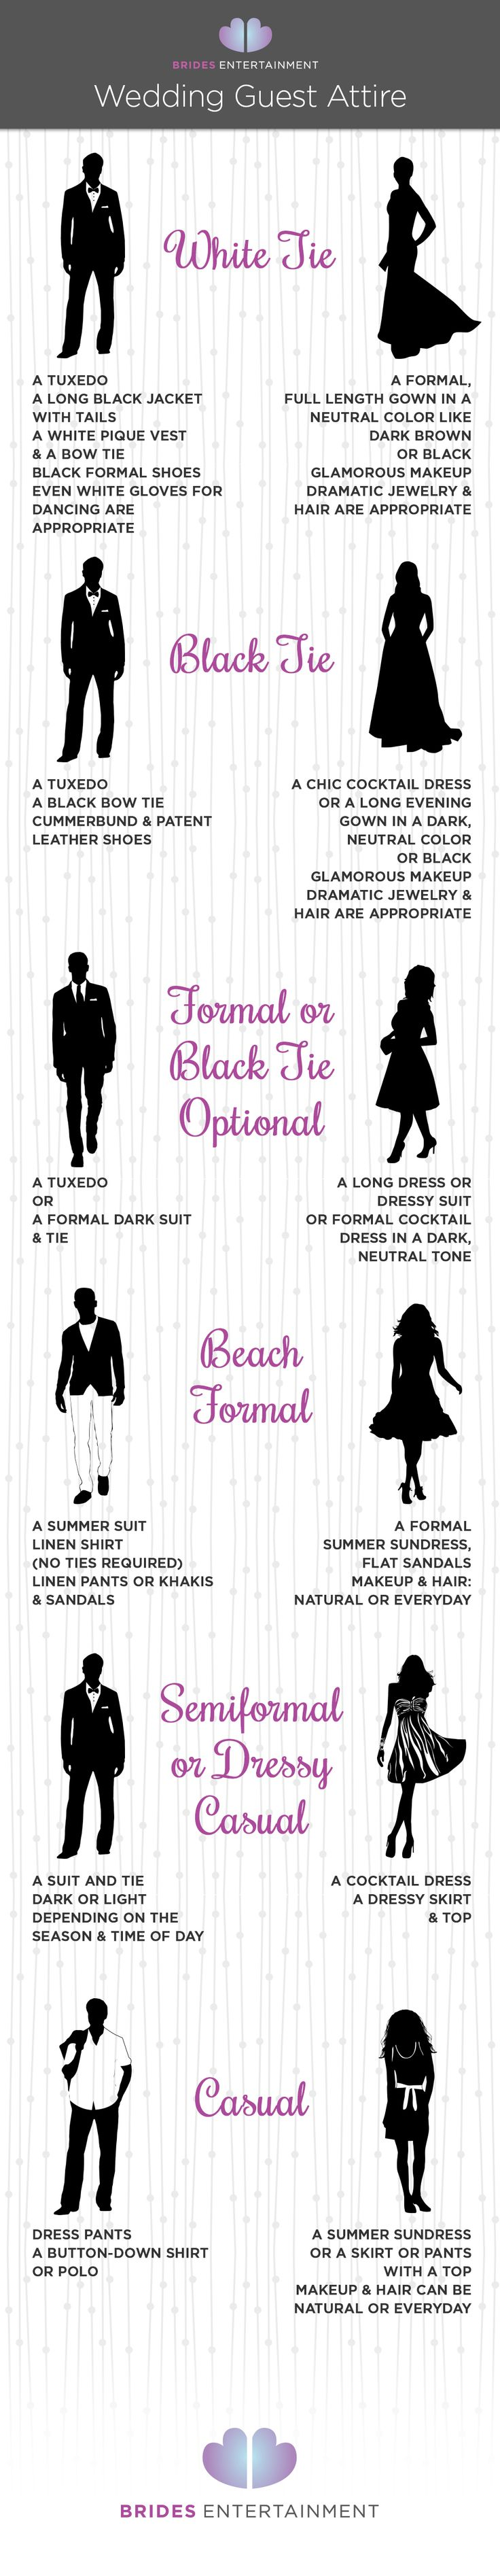 Wedding Attire Deciphered - Difference between white and black tie, semiformal, beach casual - Bride's Entertainment